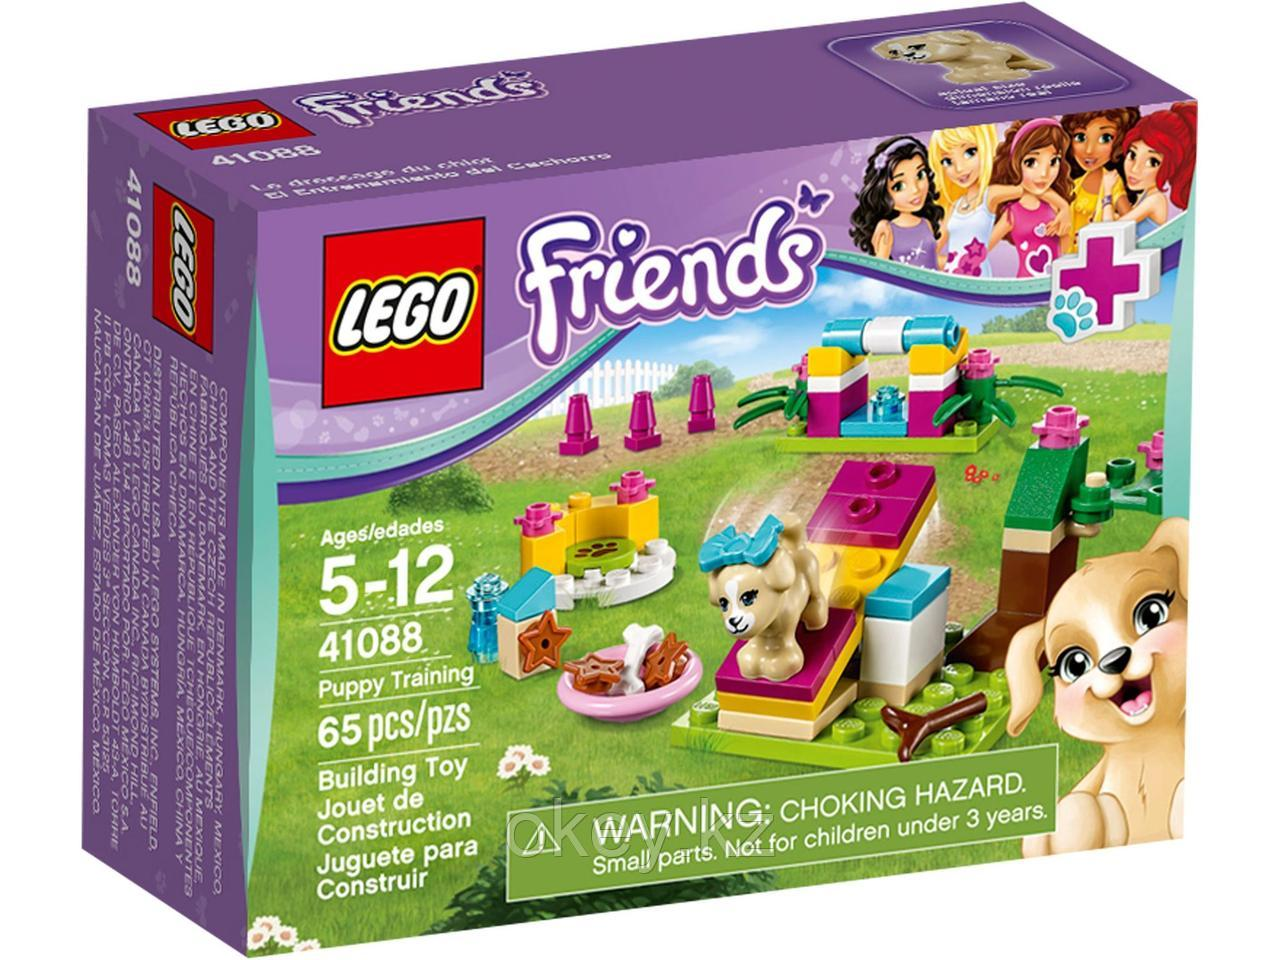 LEGO Friends: Щенок 41088